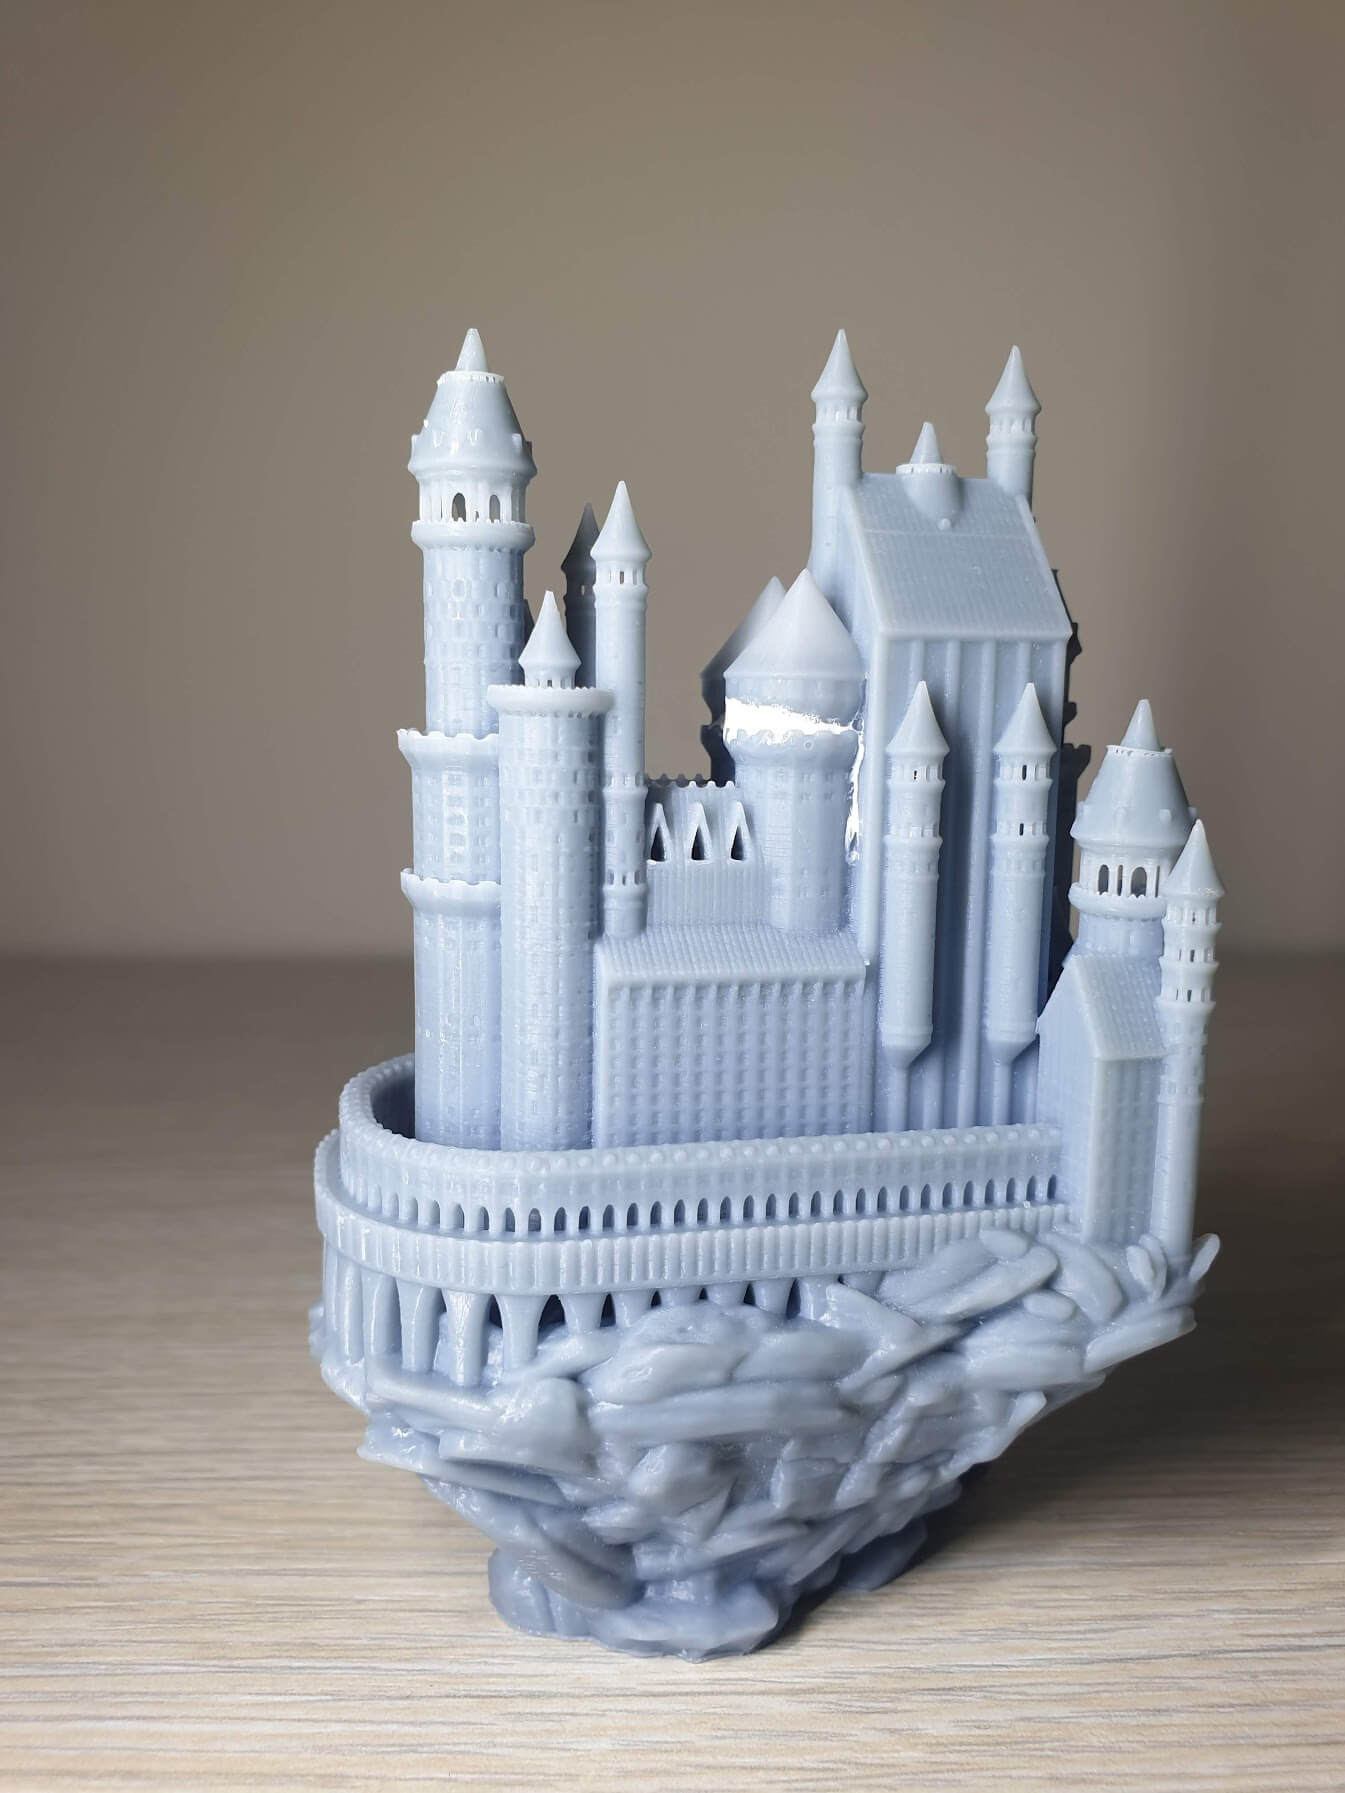 Creality-LD-002R-Review-Medieval-castle-3